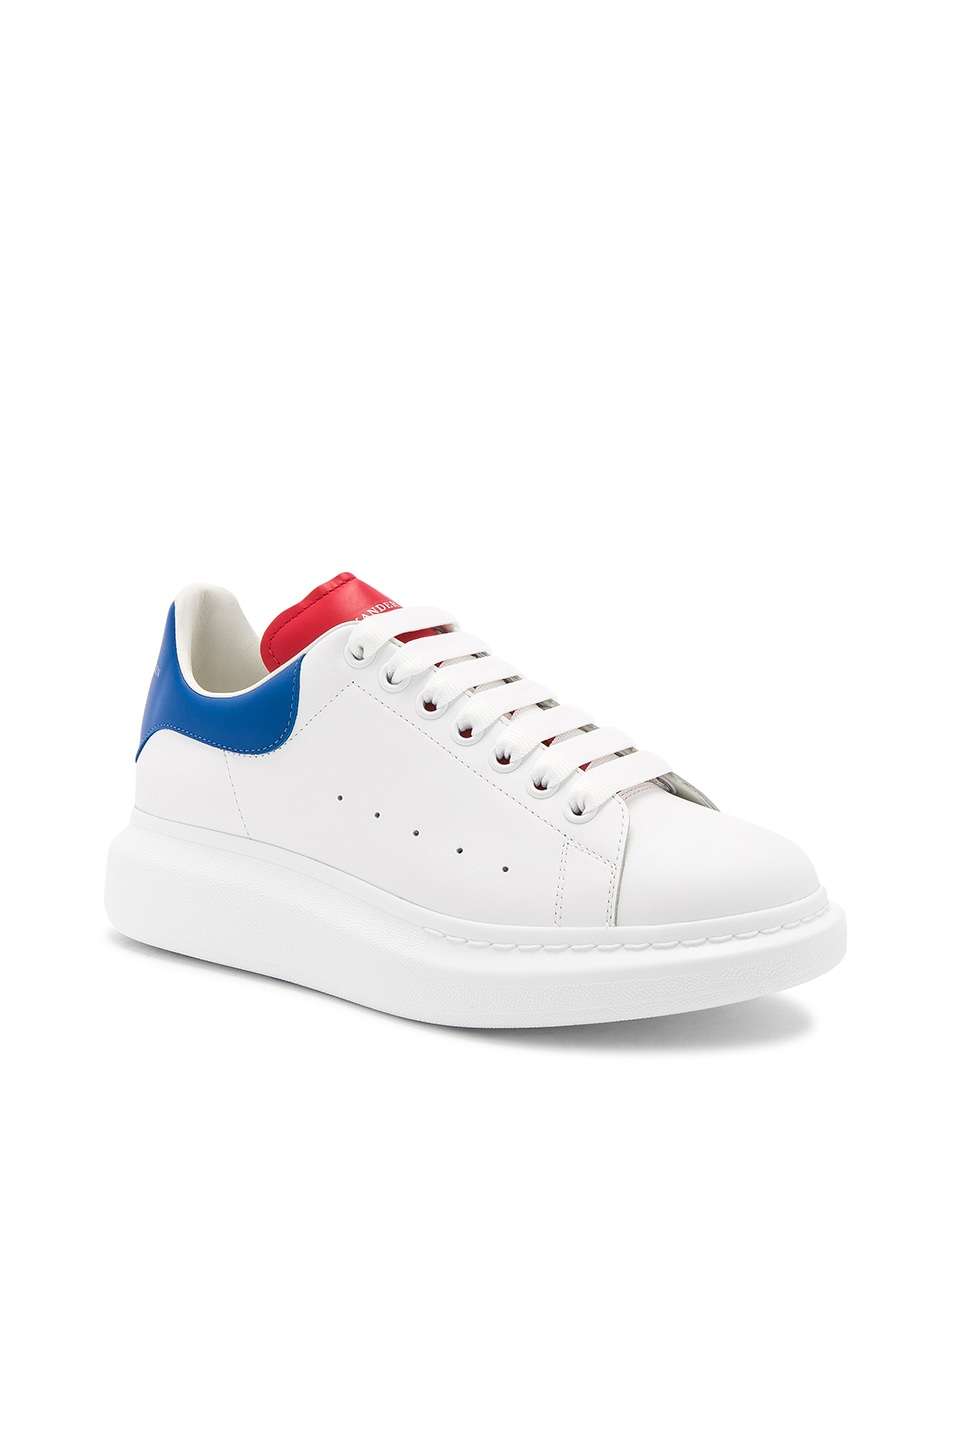 Red and White Colorblock Sneakers Alexander McQueen r3tNyEuXT